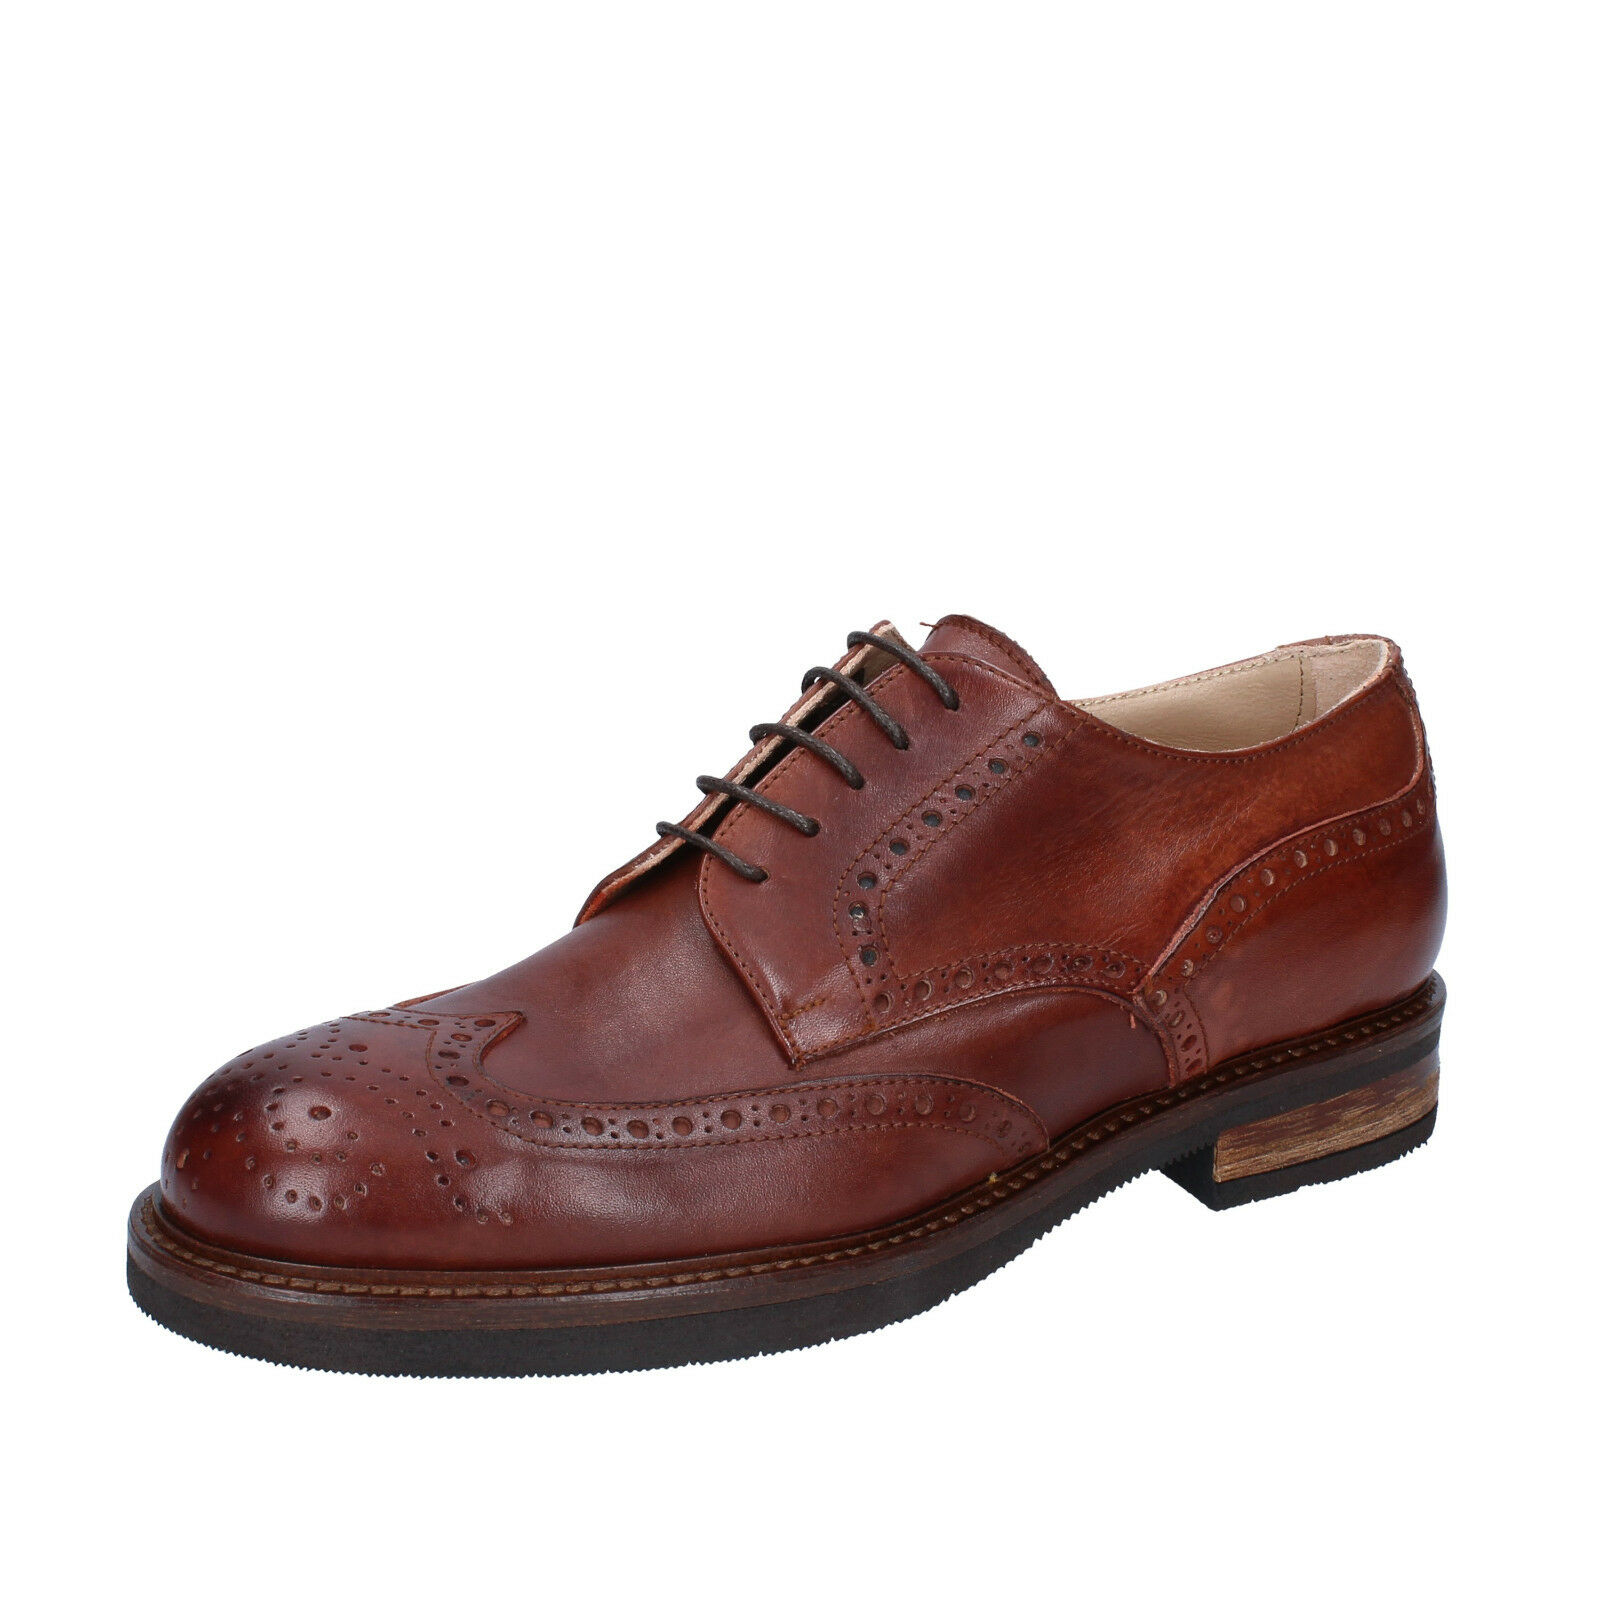 men's shoes FDF SHOES 8 () elegant brown leather BZ392-C